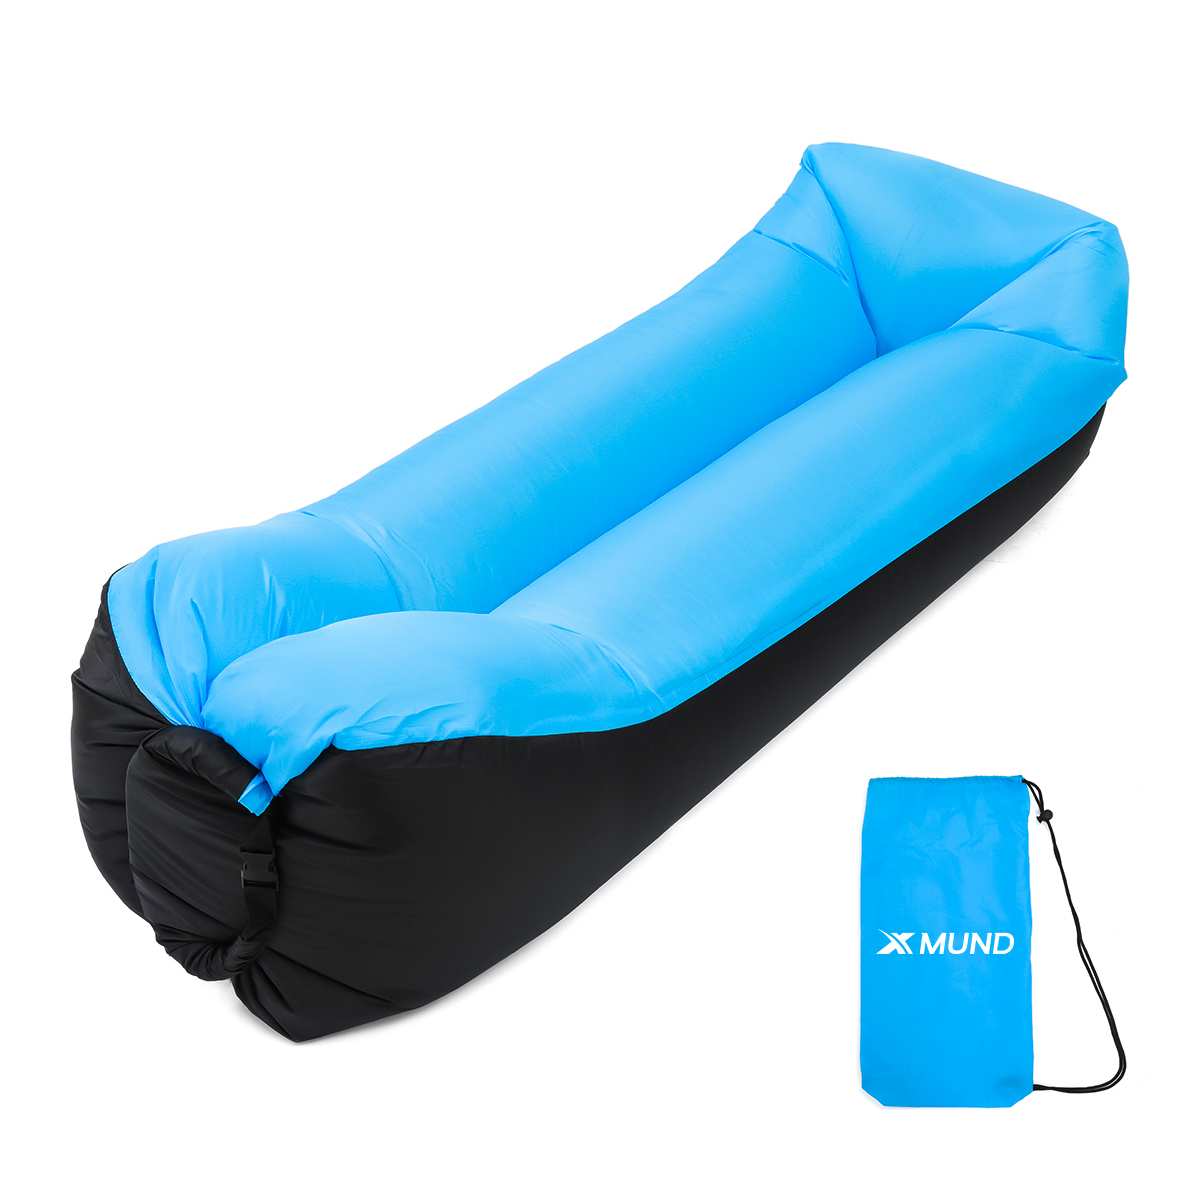 Retro Inflatable Sofa Xmund Xd If1 210t Inflatable Sofa Camping Travel Air Lazy Sofa Sleeping Sand Beach Lay Bag Couch